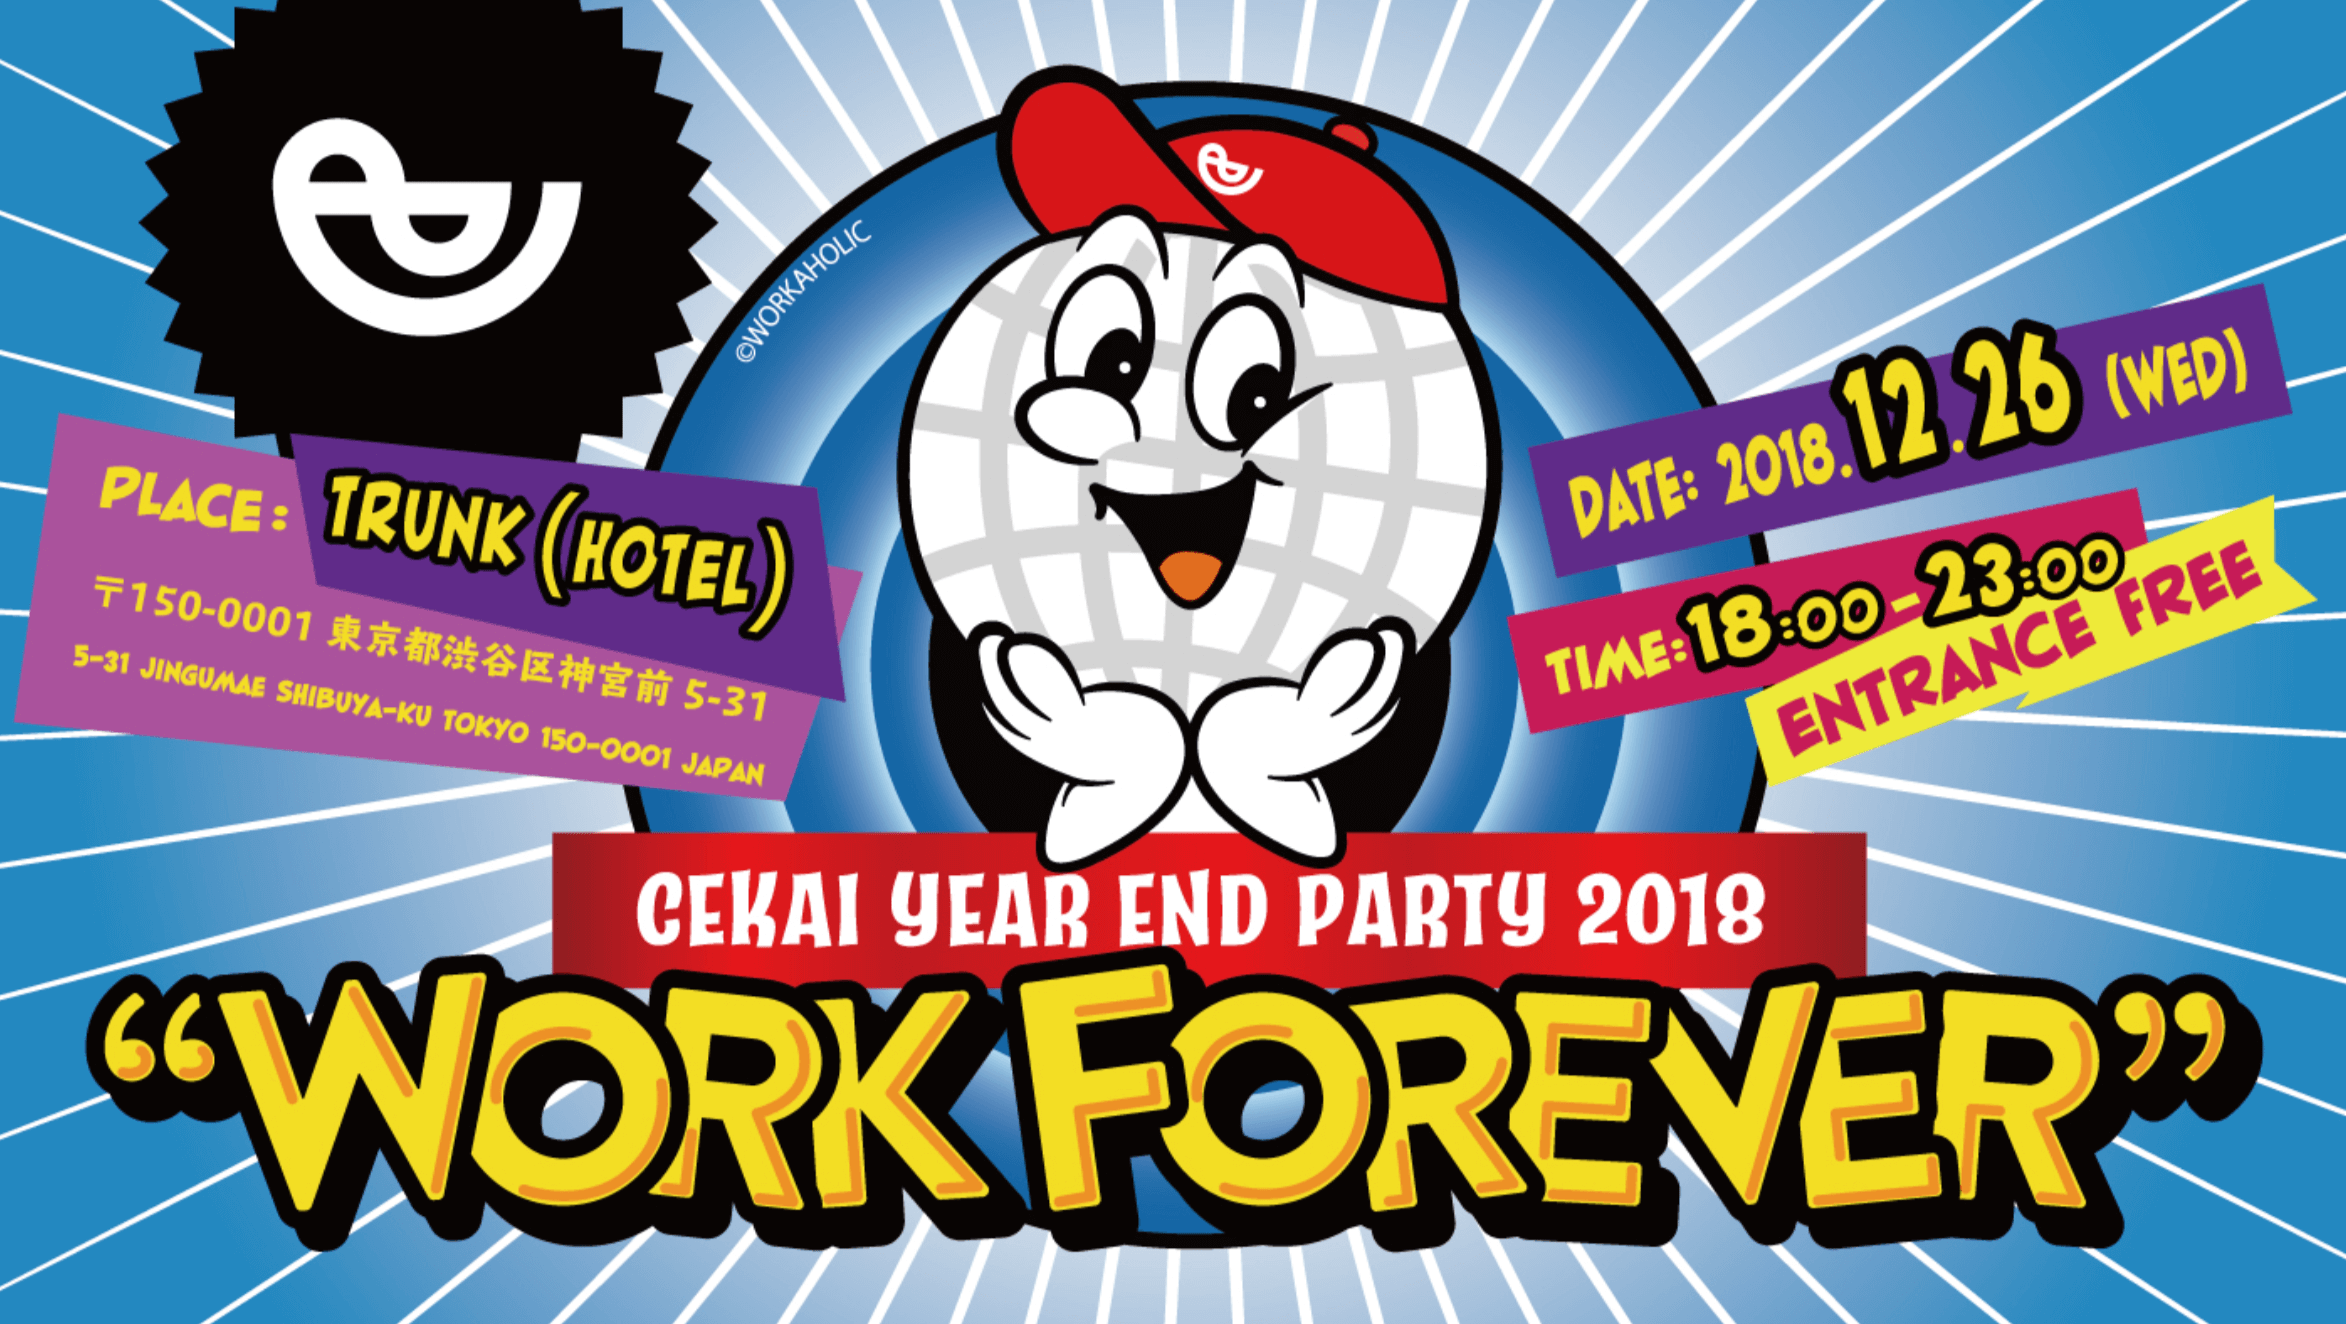 CEKAI YEAR END PARTY 2018「WORK FOREVER」